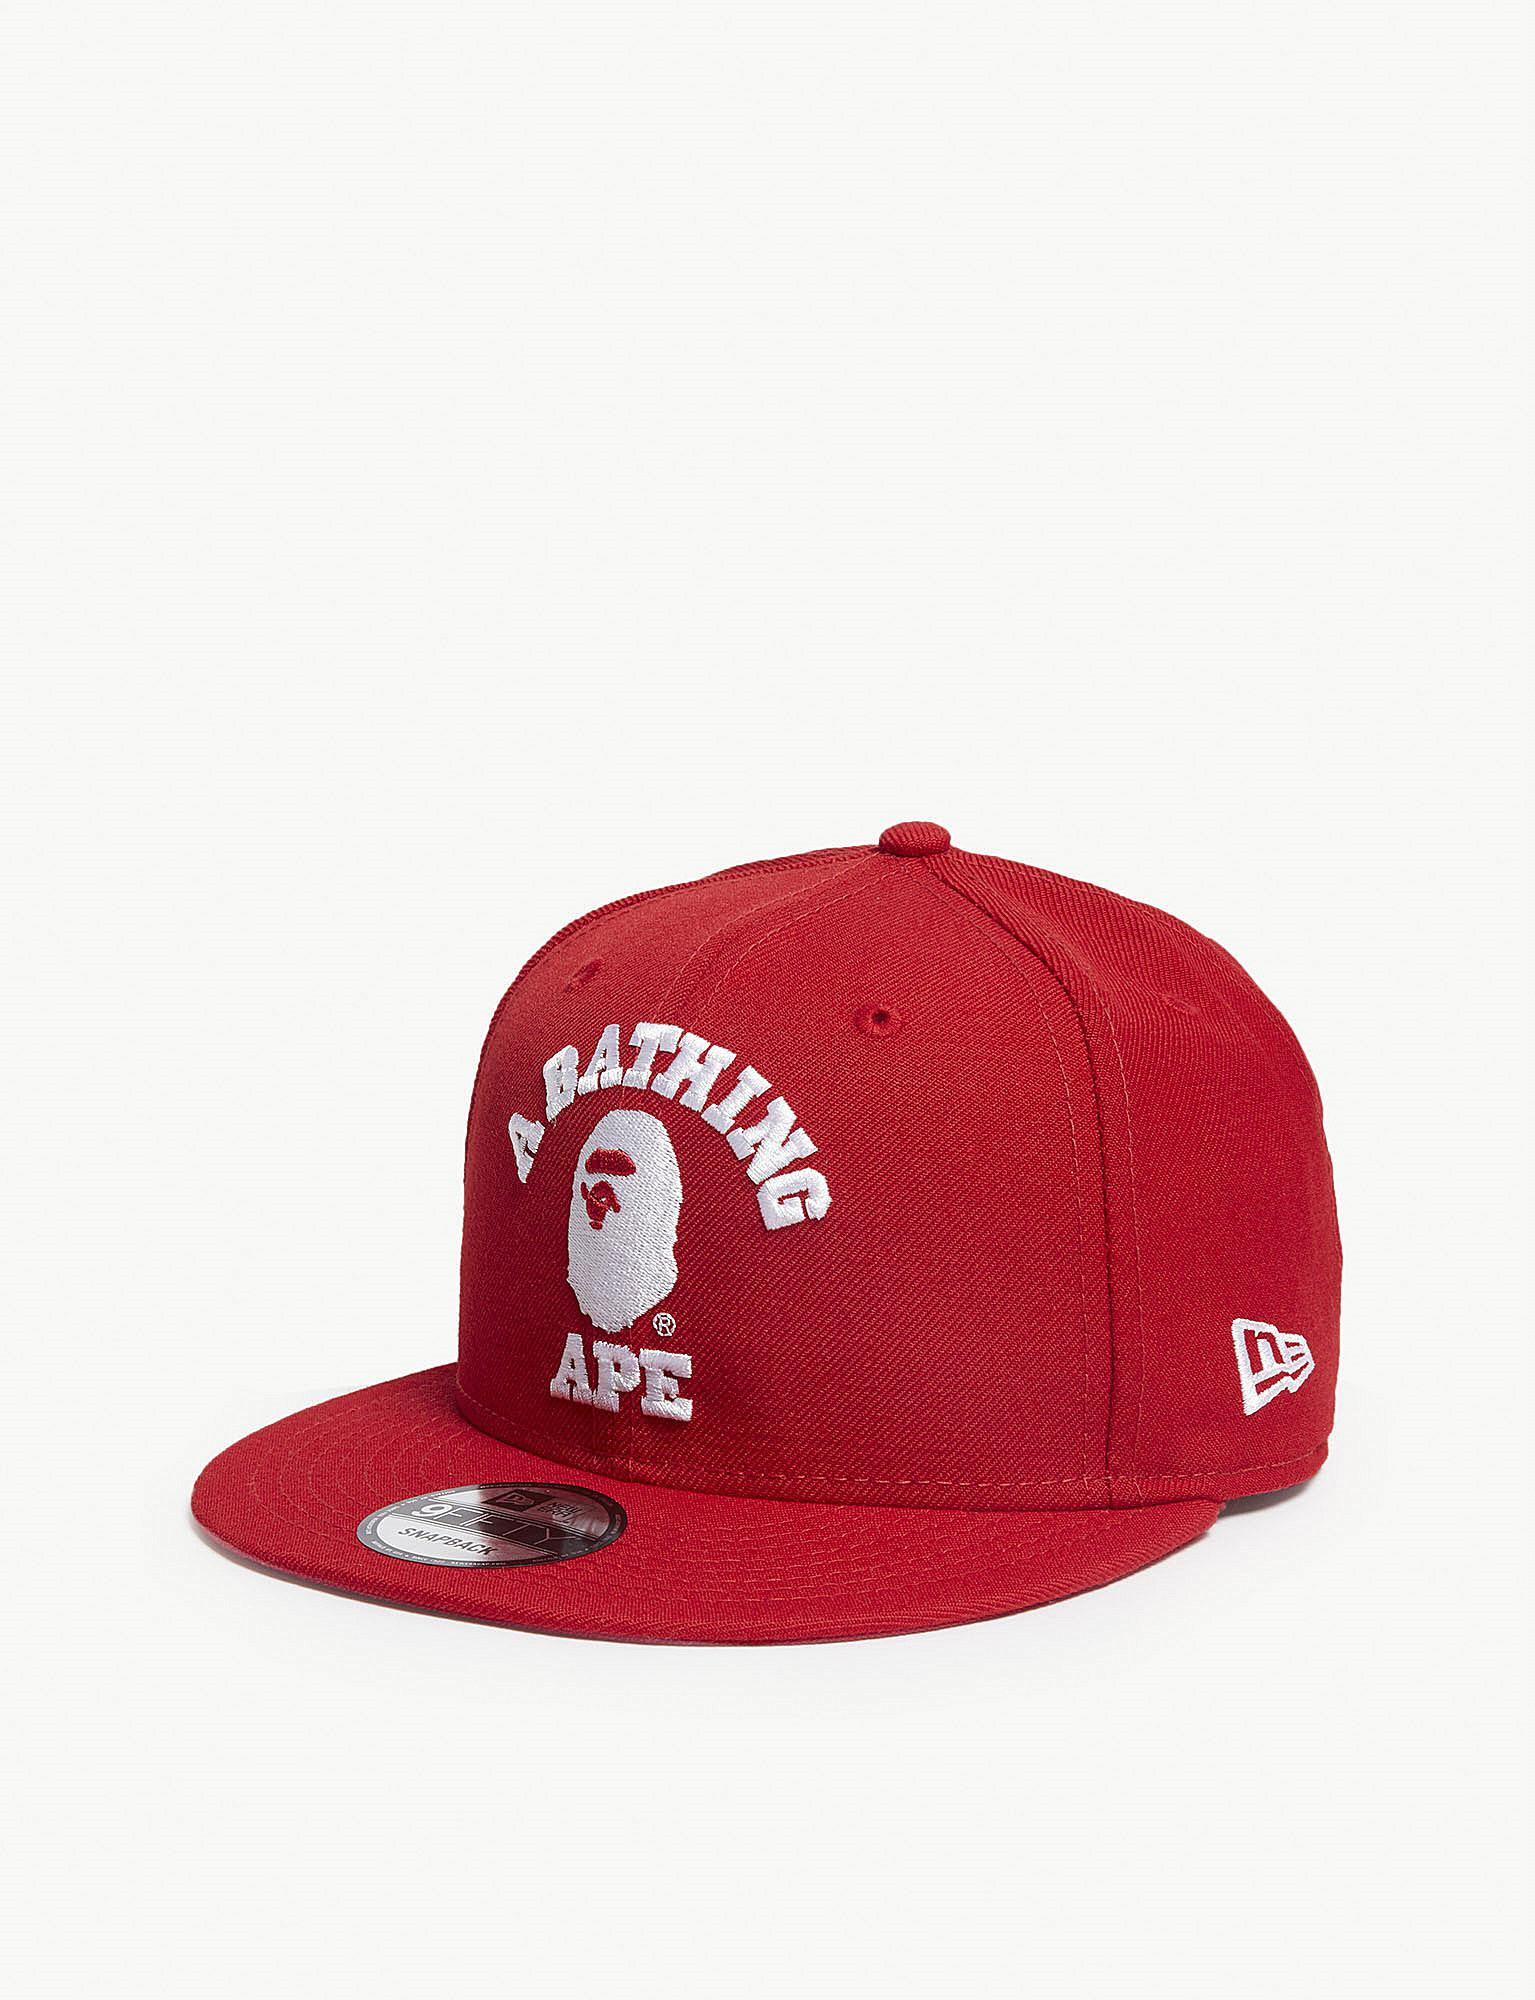 eec9a4495b0 A Bathing Ape College New Era Snapback Cap in Red for Men - Lyst